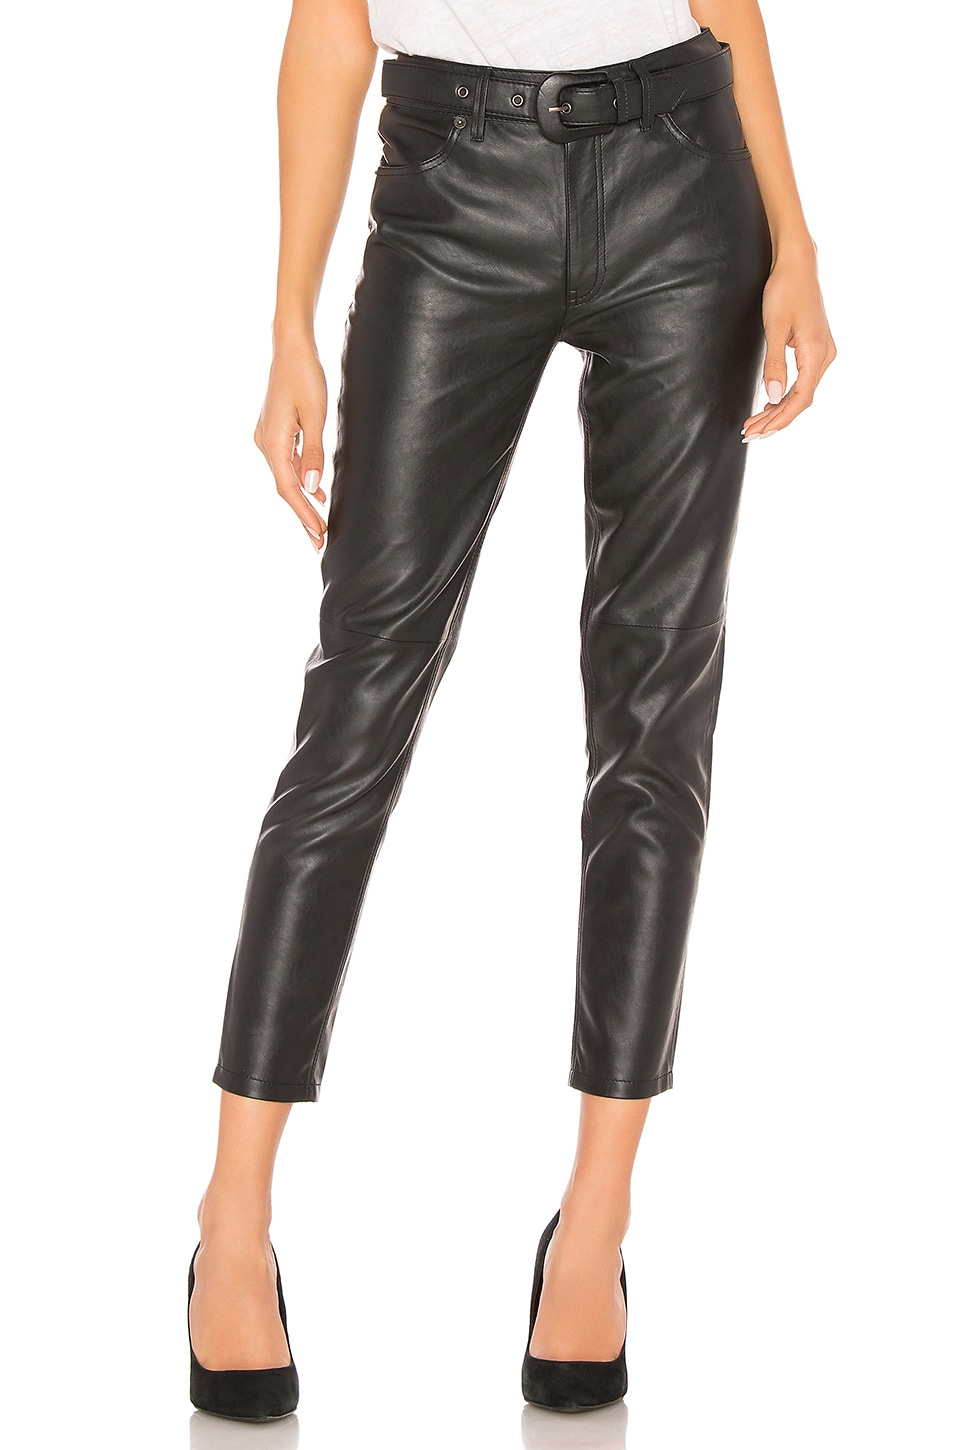 Free People Belted Vegan Leather Skinny Pant in Black